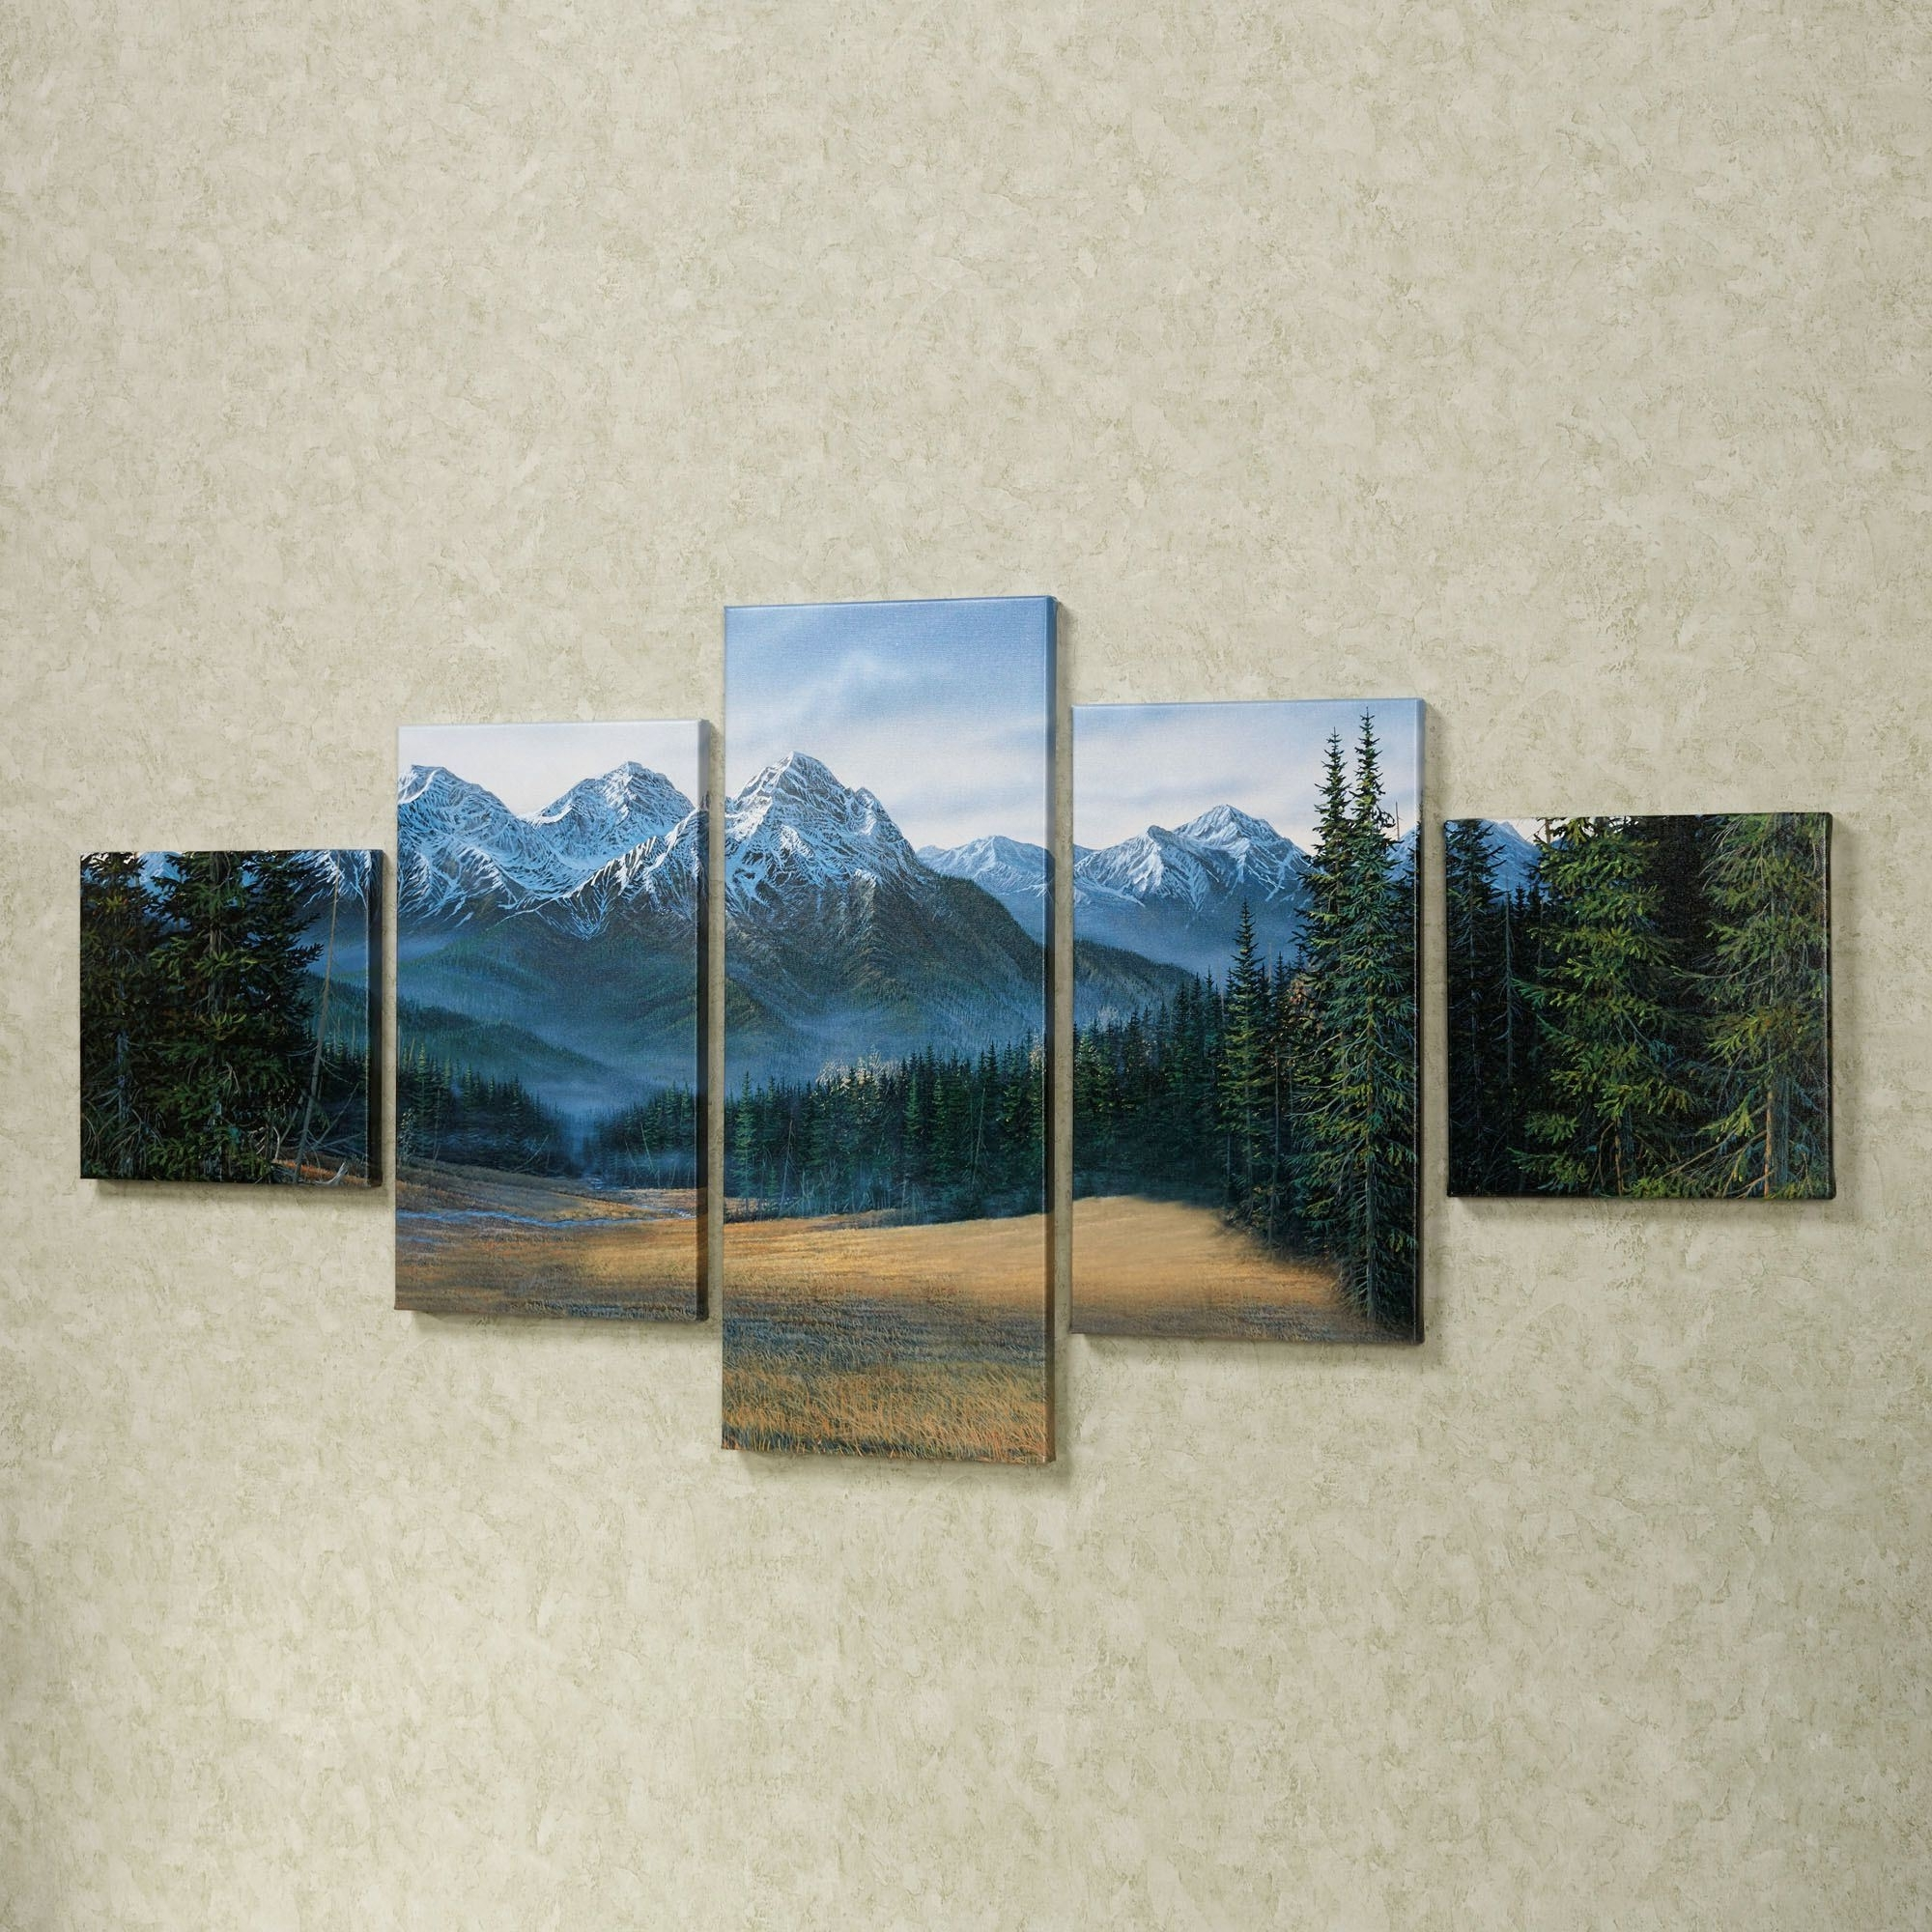 Rocky Mountain 5 Pc Canvas Wall Art Set With Most Recent Mountains Canvas Wall Art (View 14 of 15)